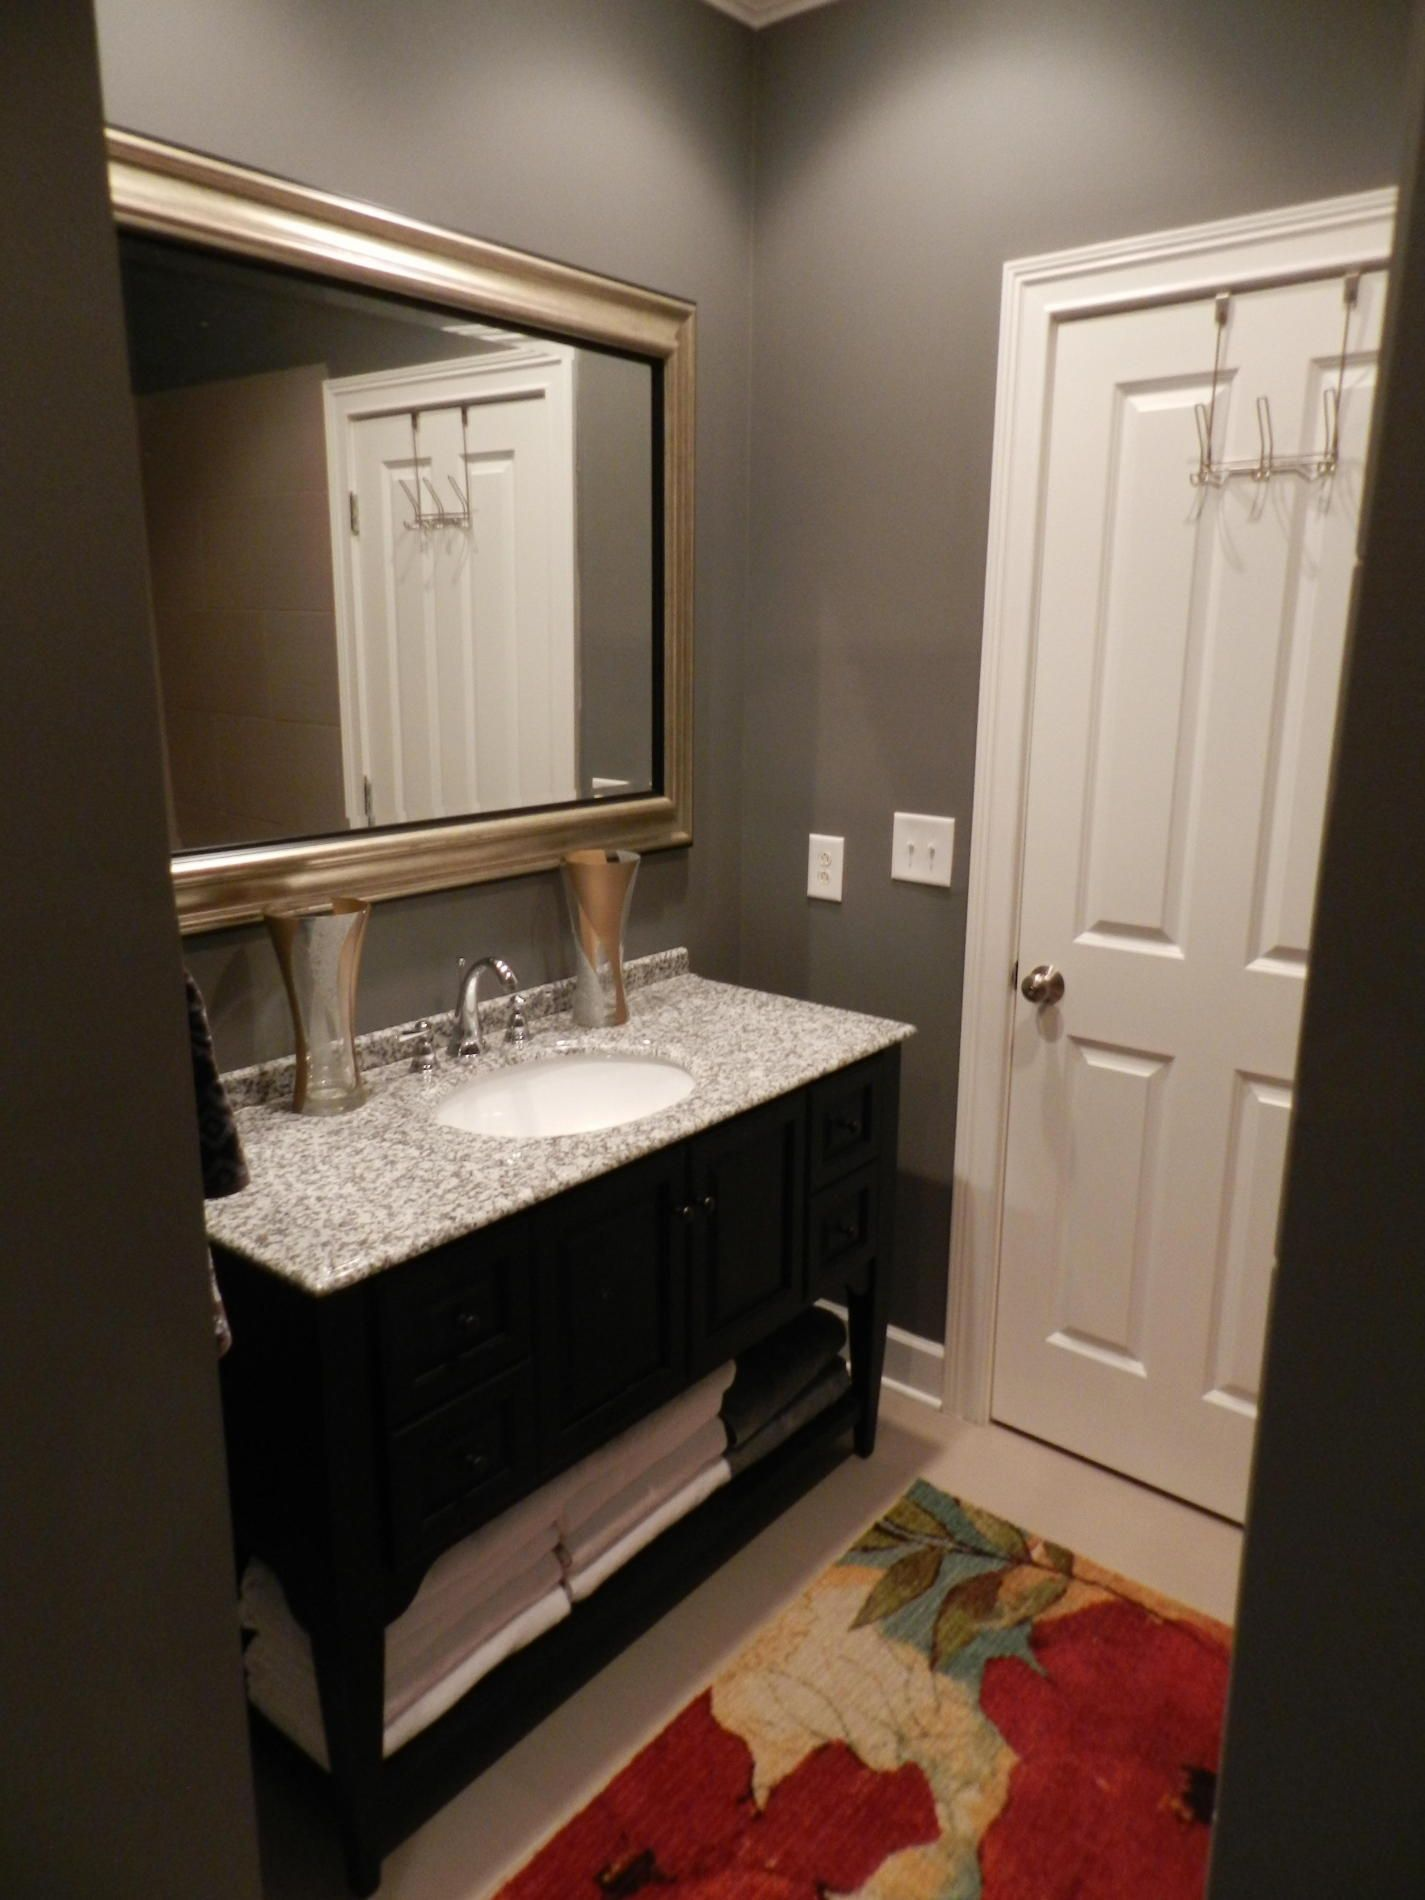 Bathroom colors themes decor ideas on pinterest shower - Besf Of Ideas Remodel My Bathroom 198 How To Remodel A Modern Bathroom With